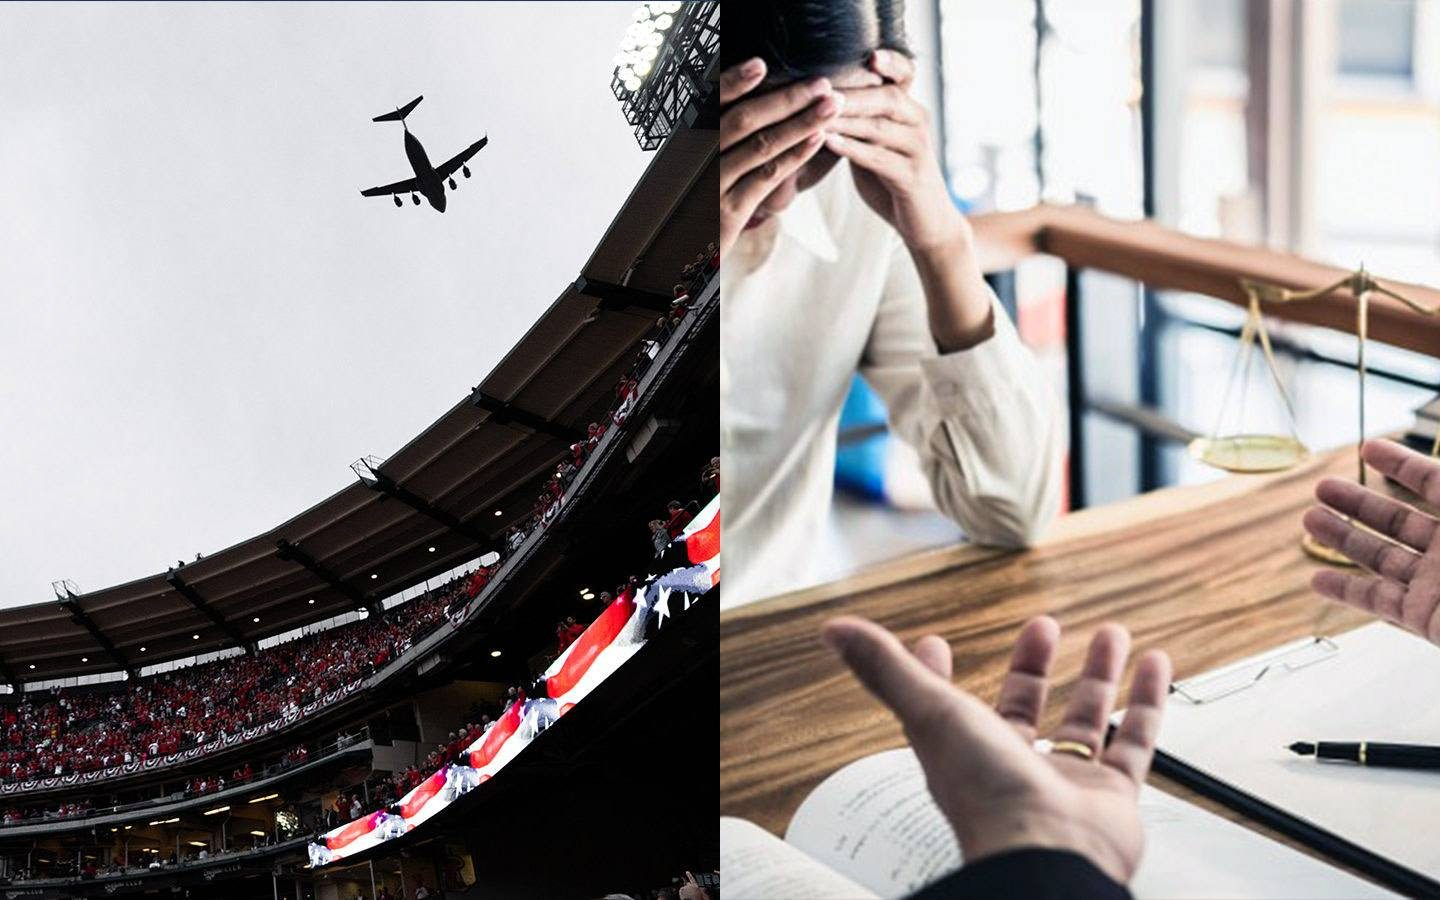 plane flying over sports area and split image of man talking to woman over business desk